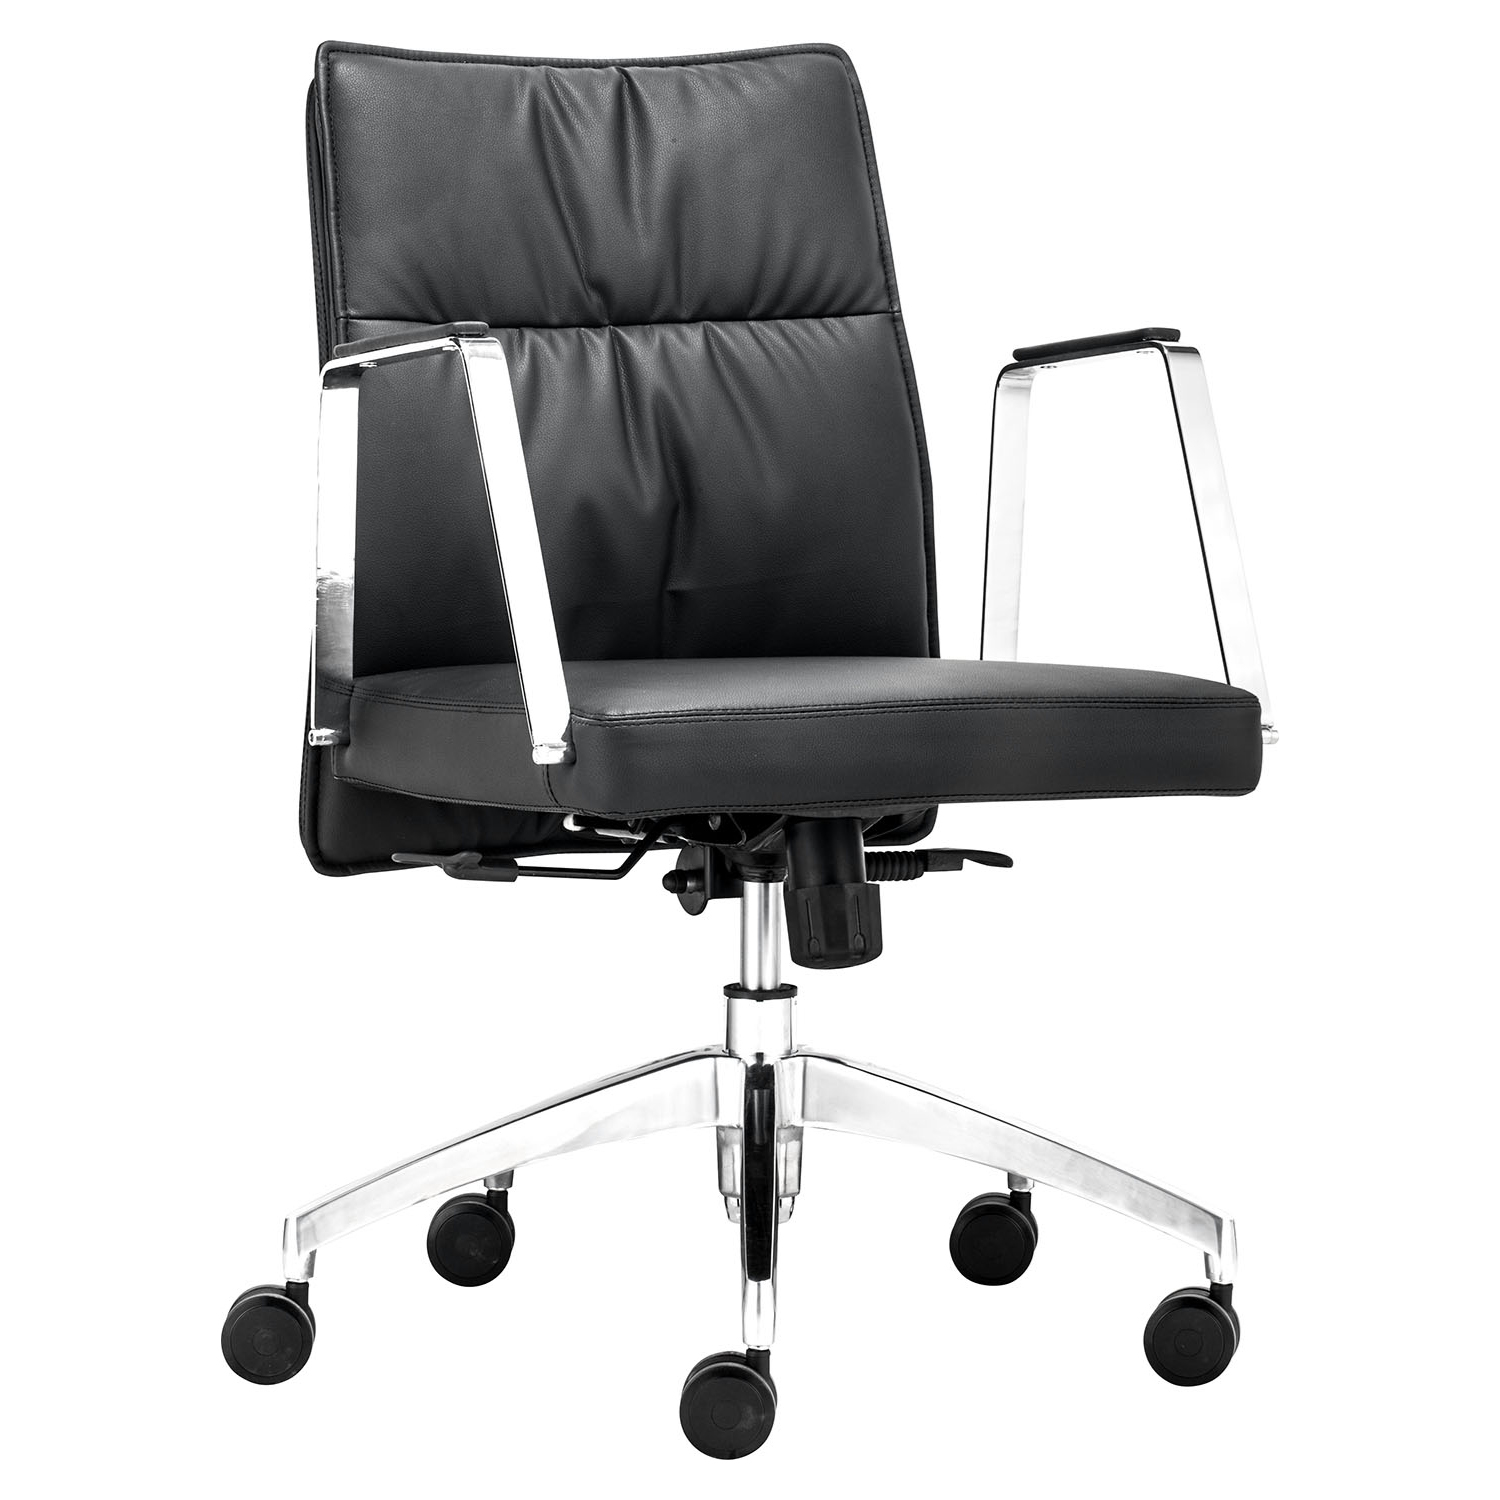 Dean Low Back Office Chair - Casters, Black - ZM-206136